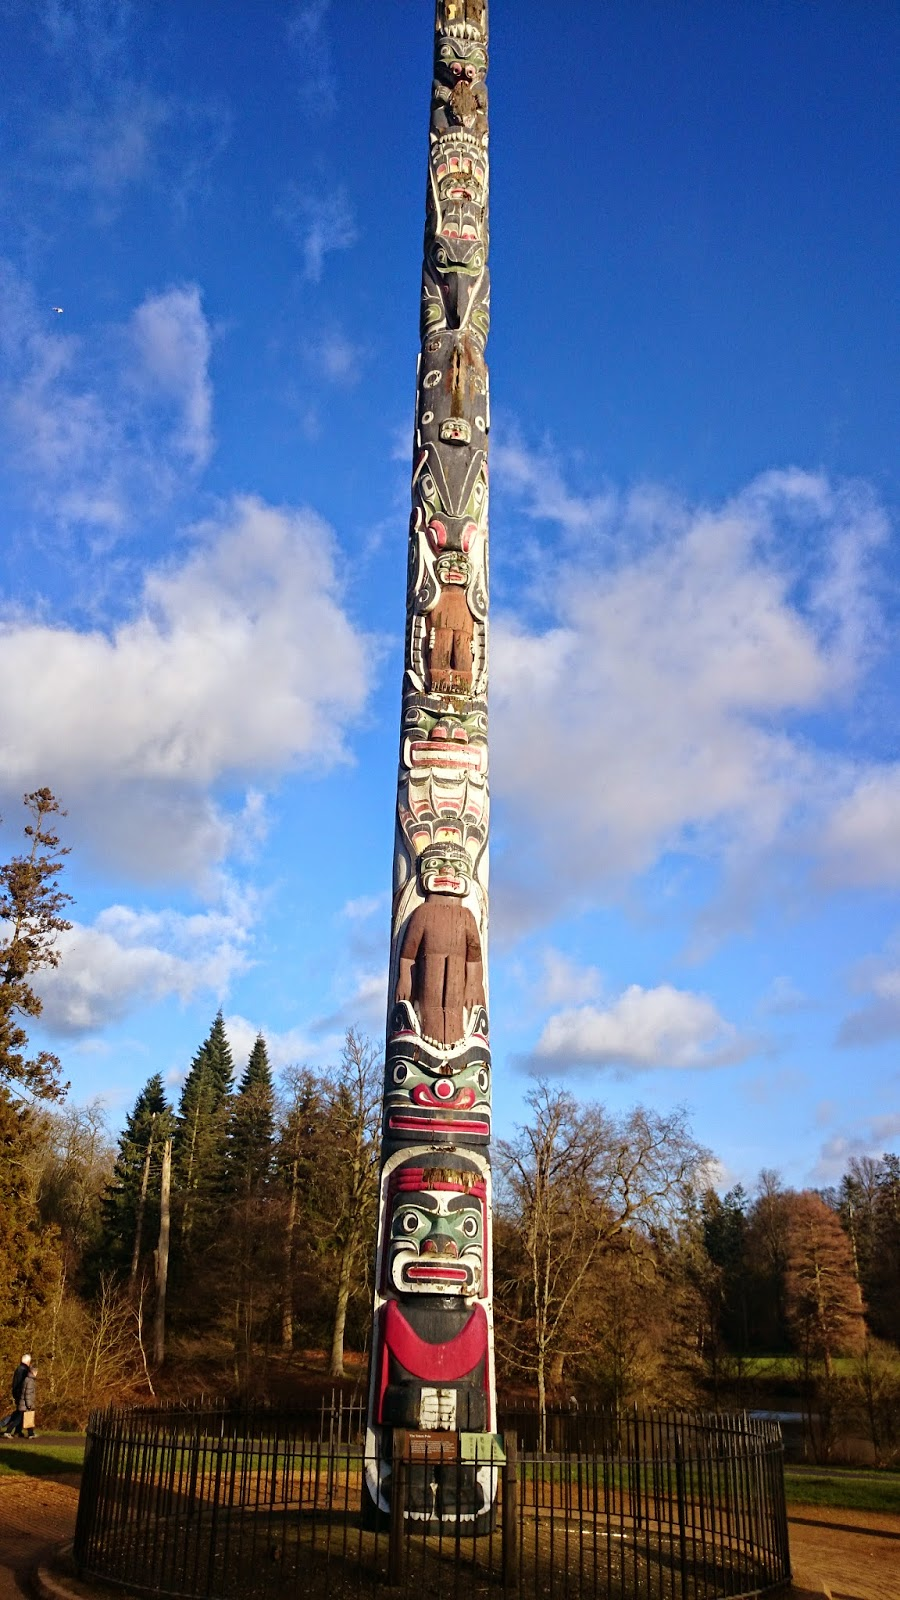 Totem at the Virginia Water Park